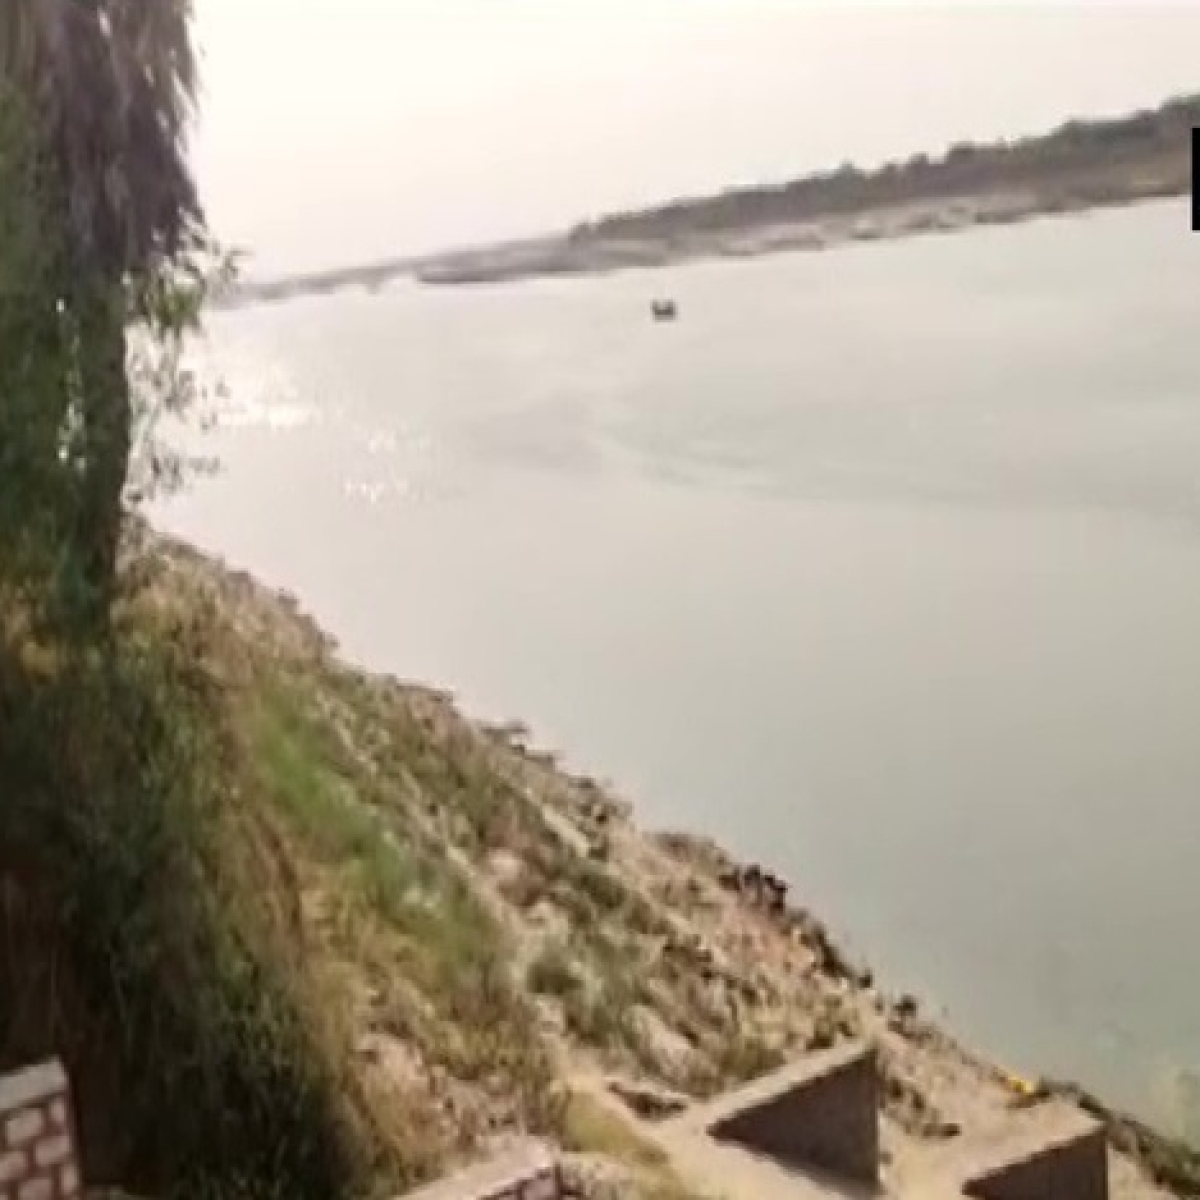 After Bihar, bodies found floating in Ganga river in UP's Ghazipur